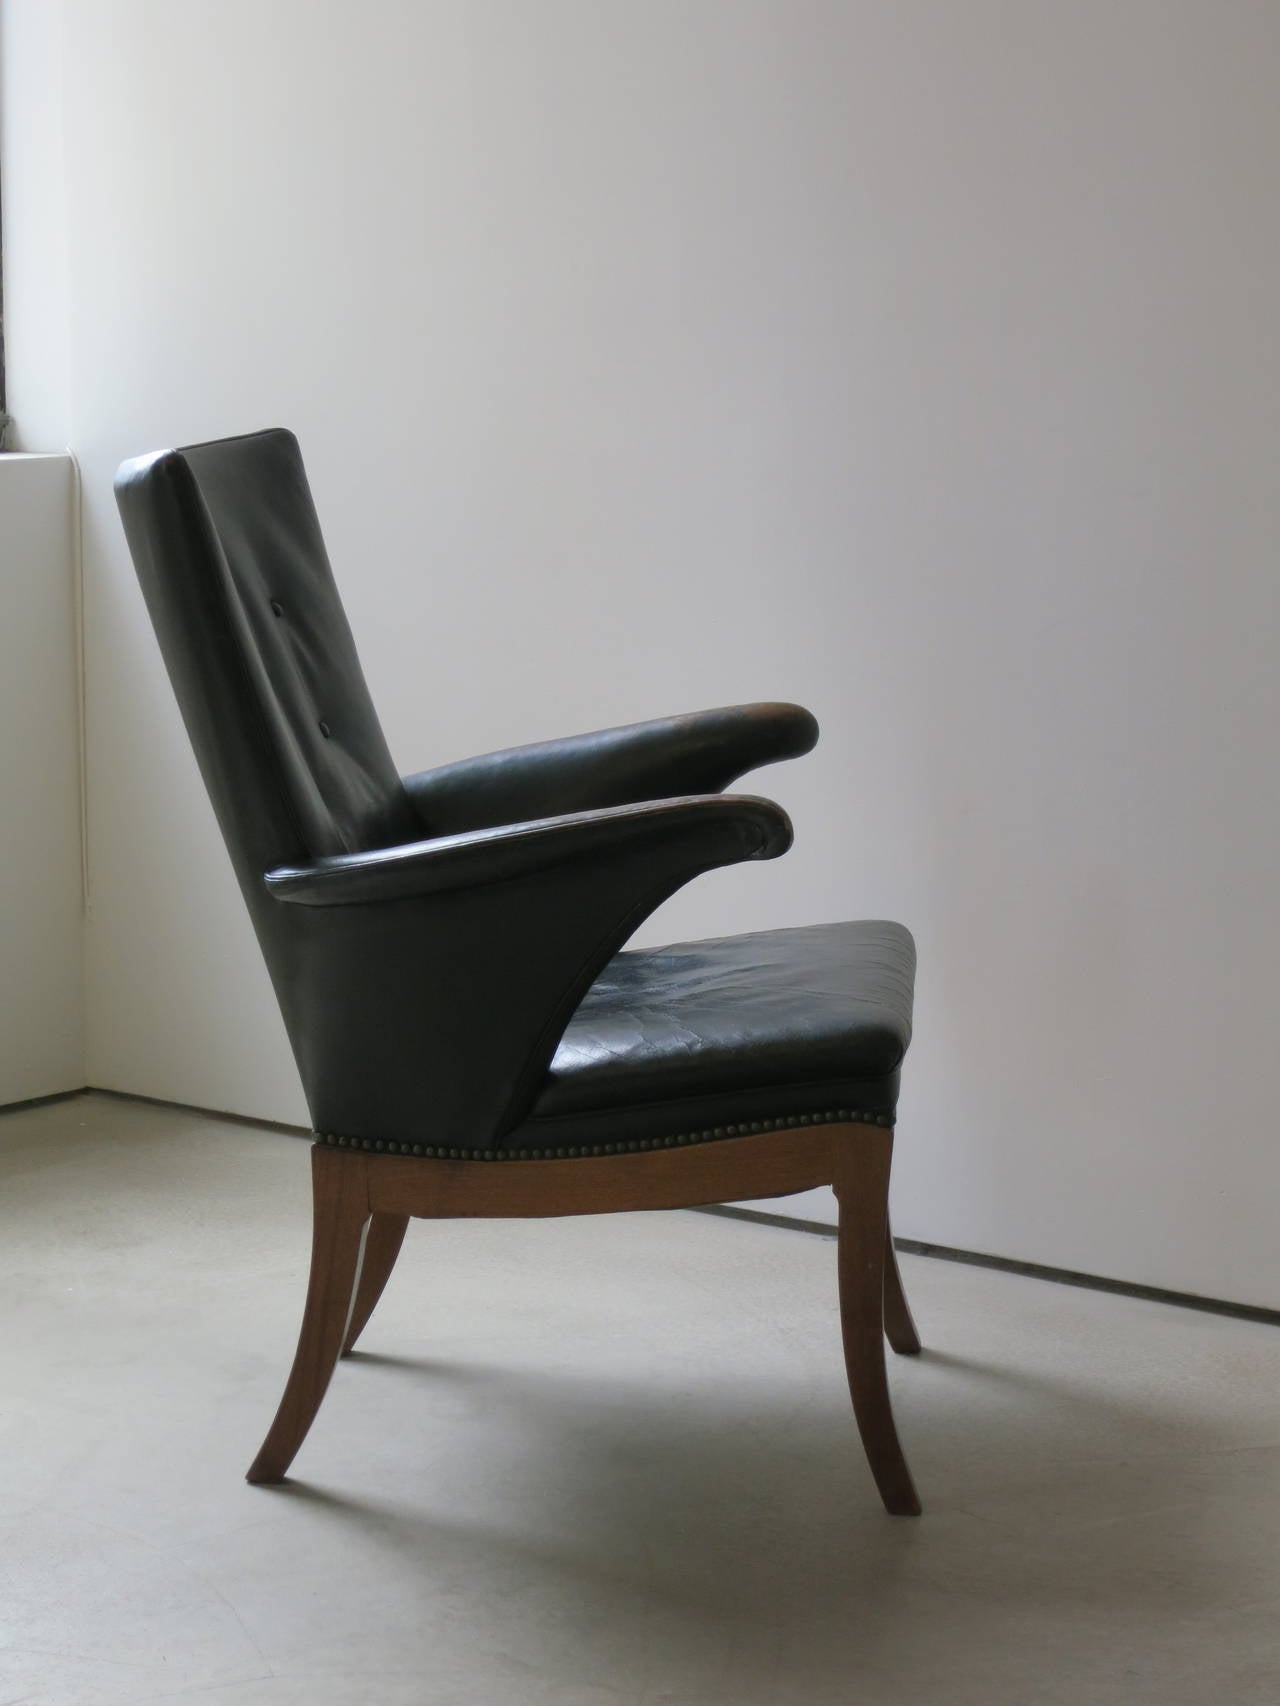 Danish Armchair in Original Black-Brown Leather by Frits Henningsen, 1930s For Sale